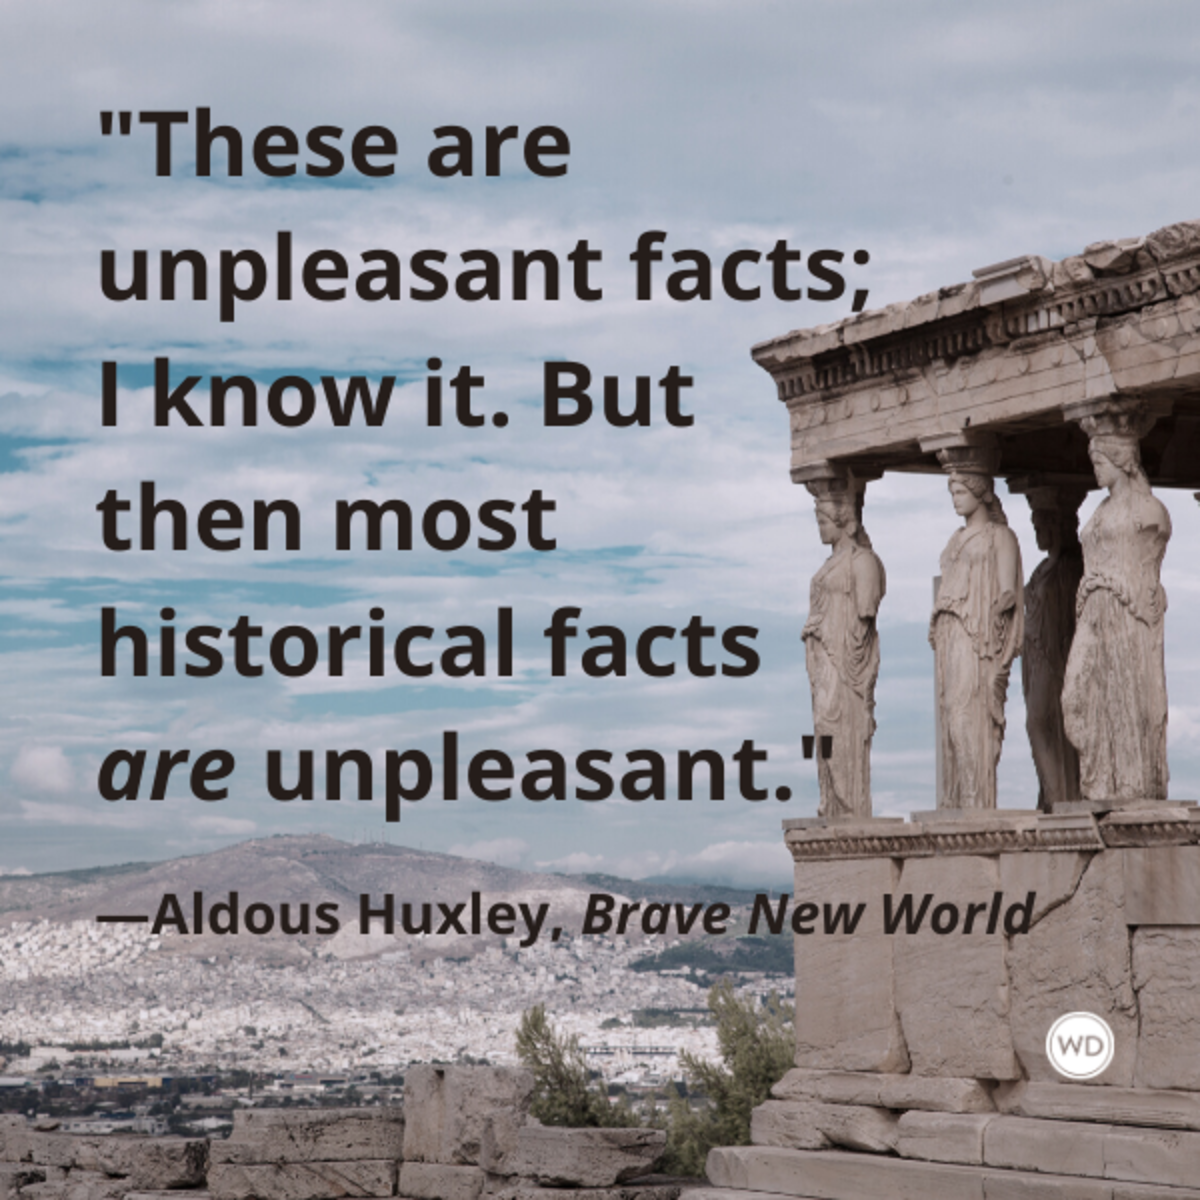 aldous_huxley_brave_new_world_quotes_these_are_unpleasant_facts